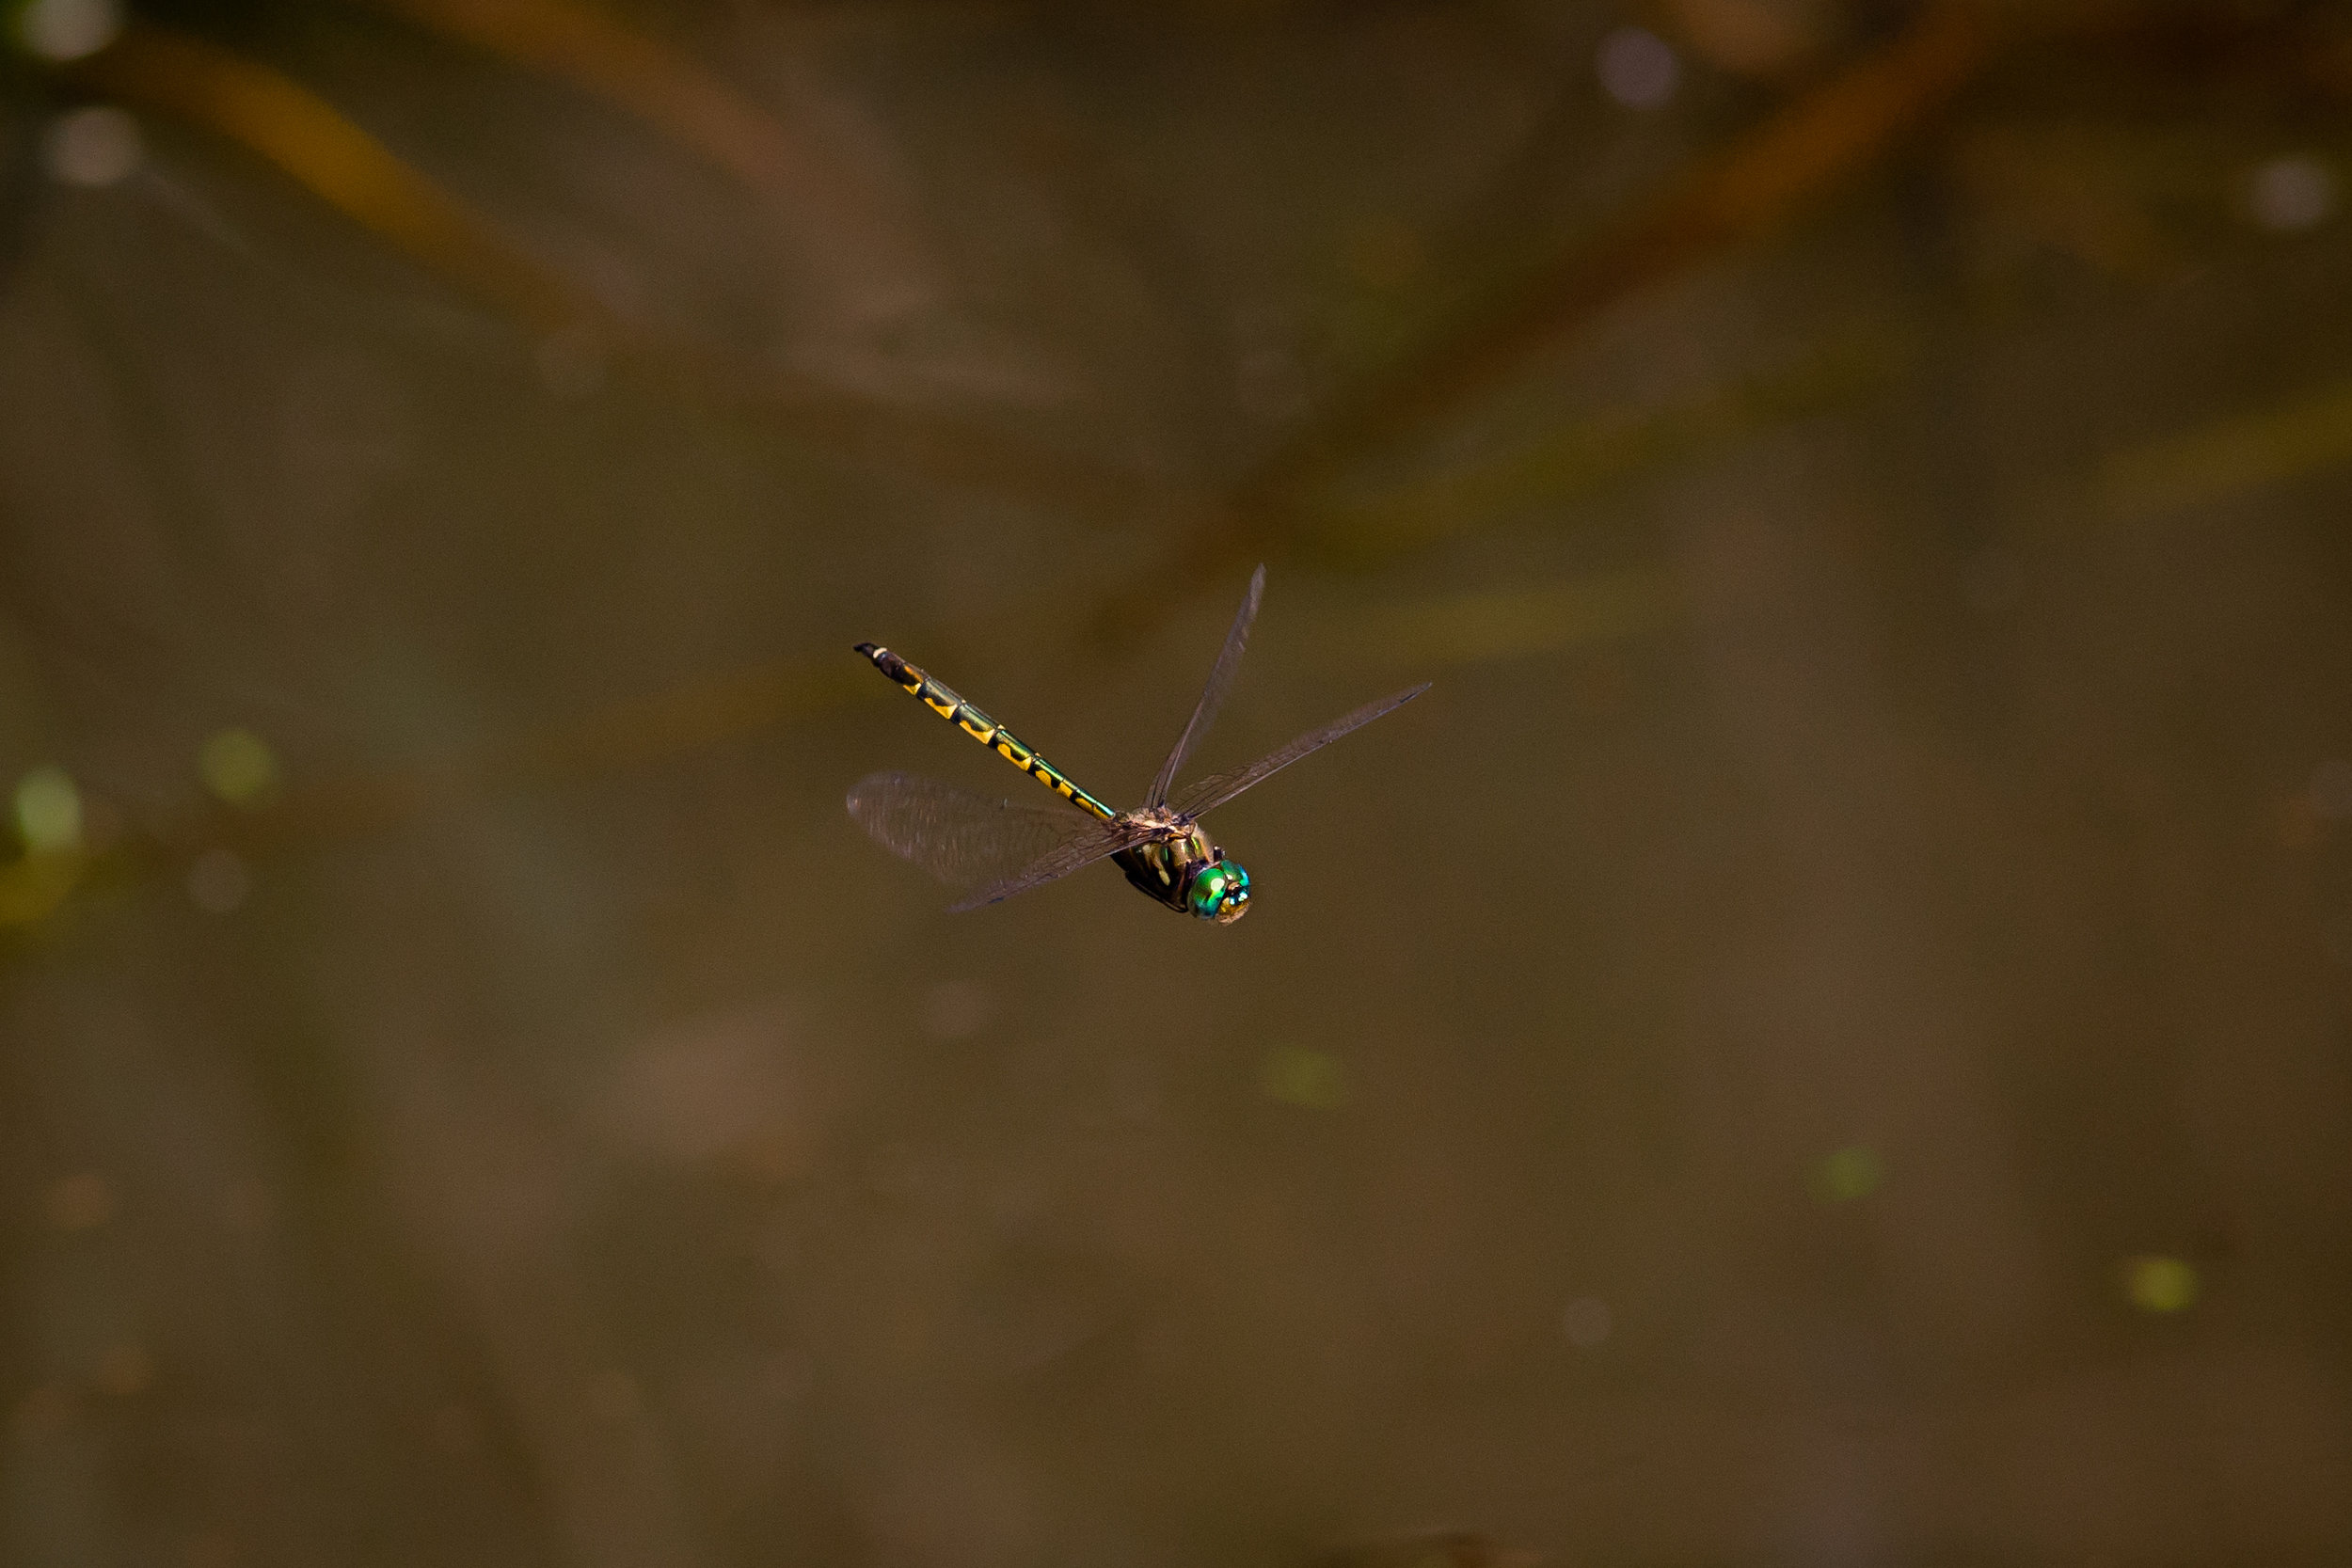 """IDs mk2 and 400 f5.6L. With the long lens, the 2-3 meter """"hops"""" the dragonfly made were relatively small adjustments. Closer would have meant greater shifts."""